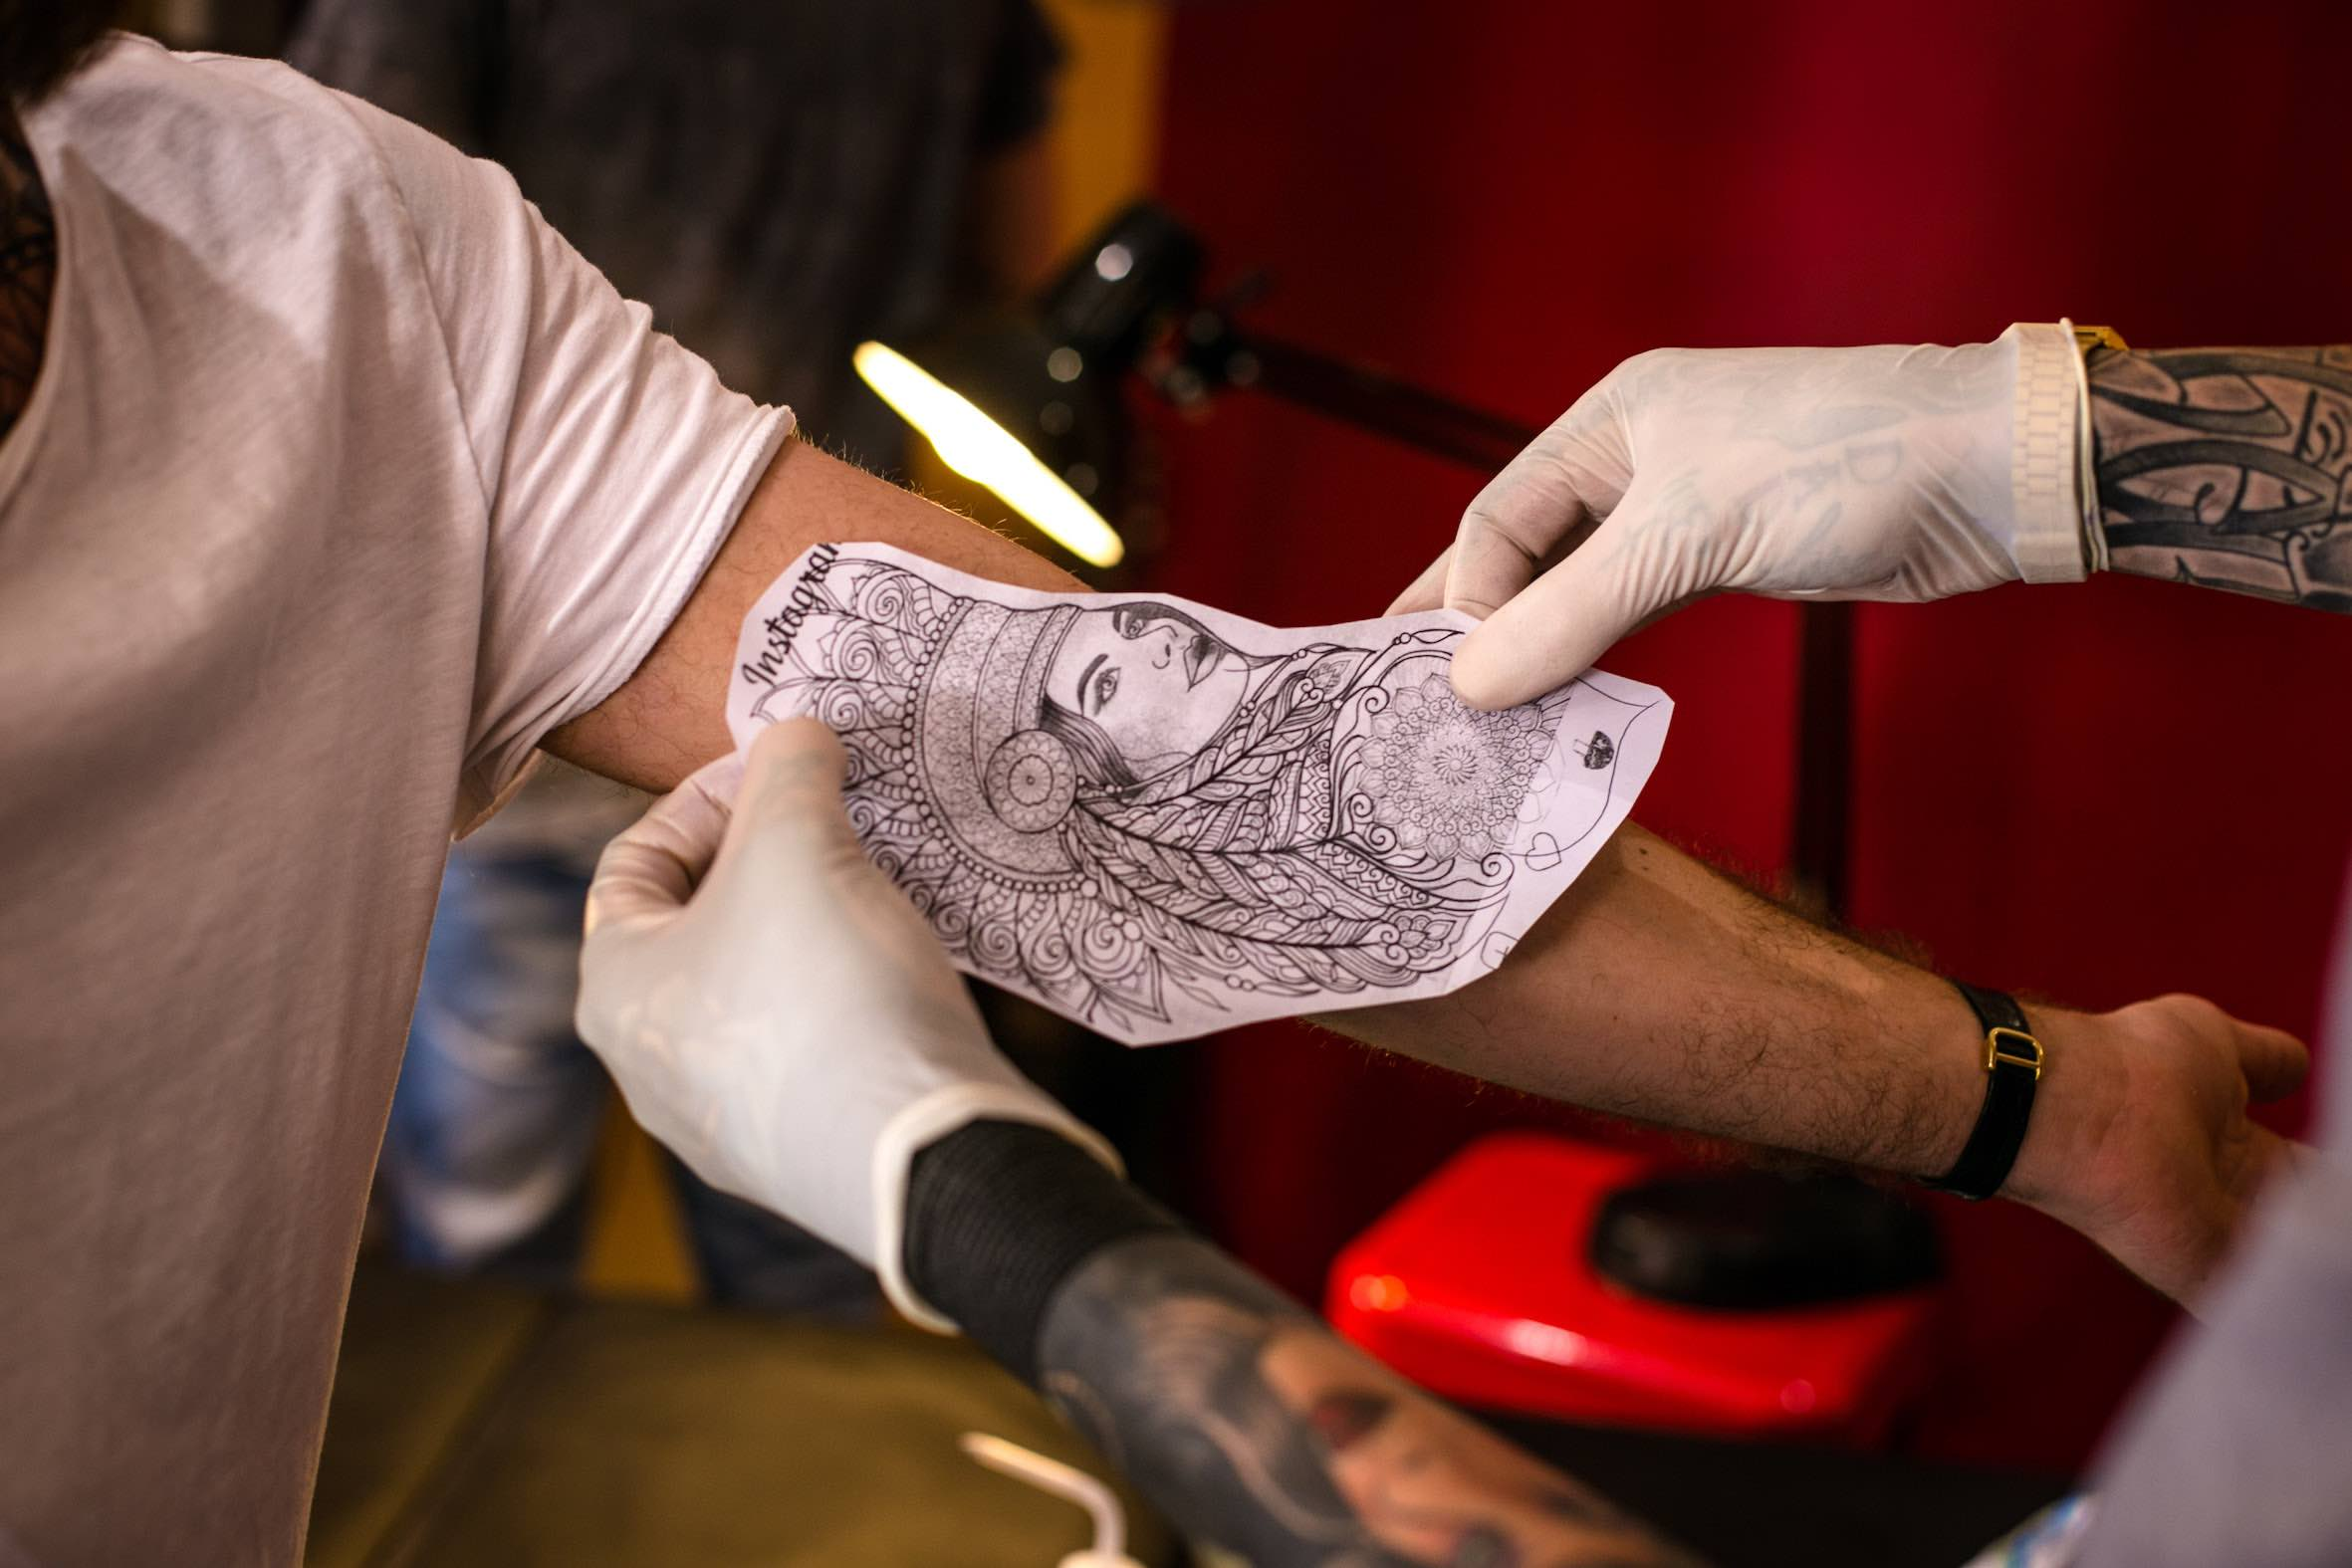 Duran Niemach placing a stencil on a client at SA Hardcore Tattoos